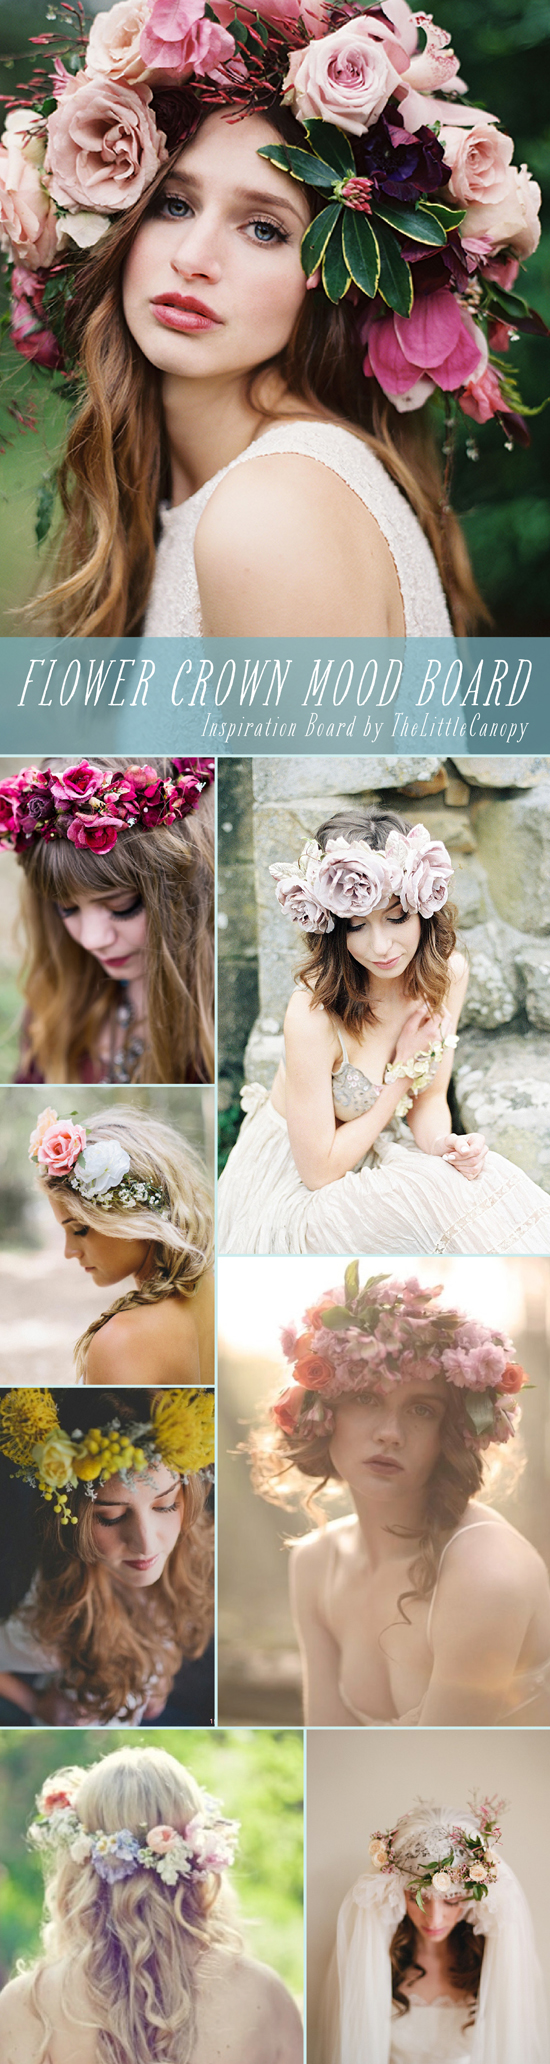 Inspiration Board: Flower Crown Mood Board // Why haven't we done this yet? This week's inspiration board is a delicious mood board of flower crowns! Flowers are the icing on the cake, friends. And so, therefore, the bigger the flower crown, the happier you'll be - nailed it. Enjoy!